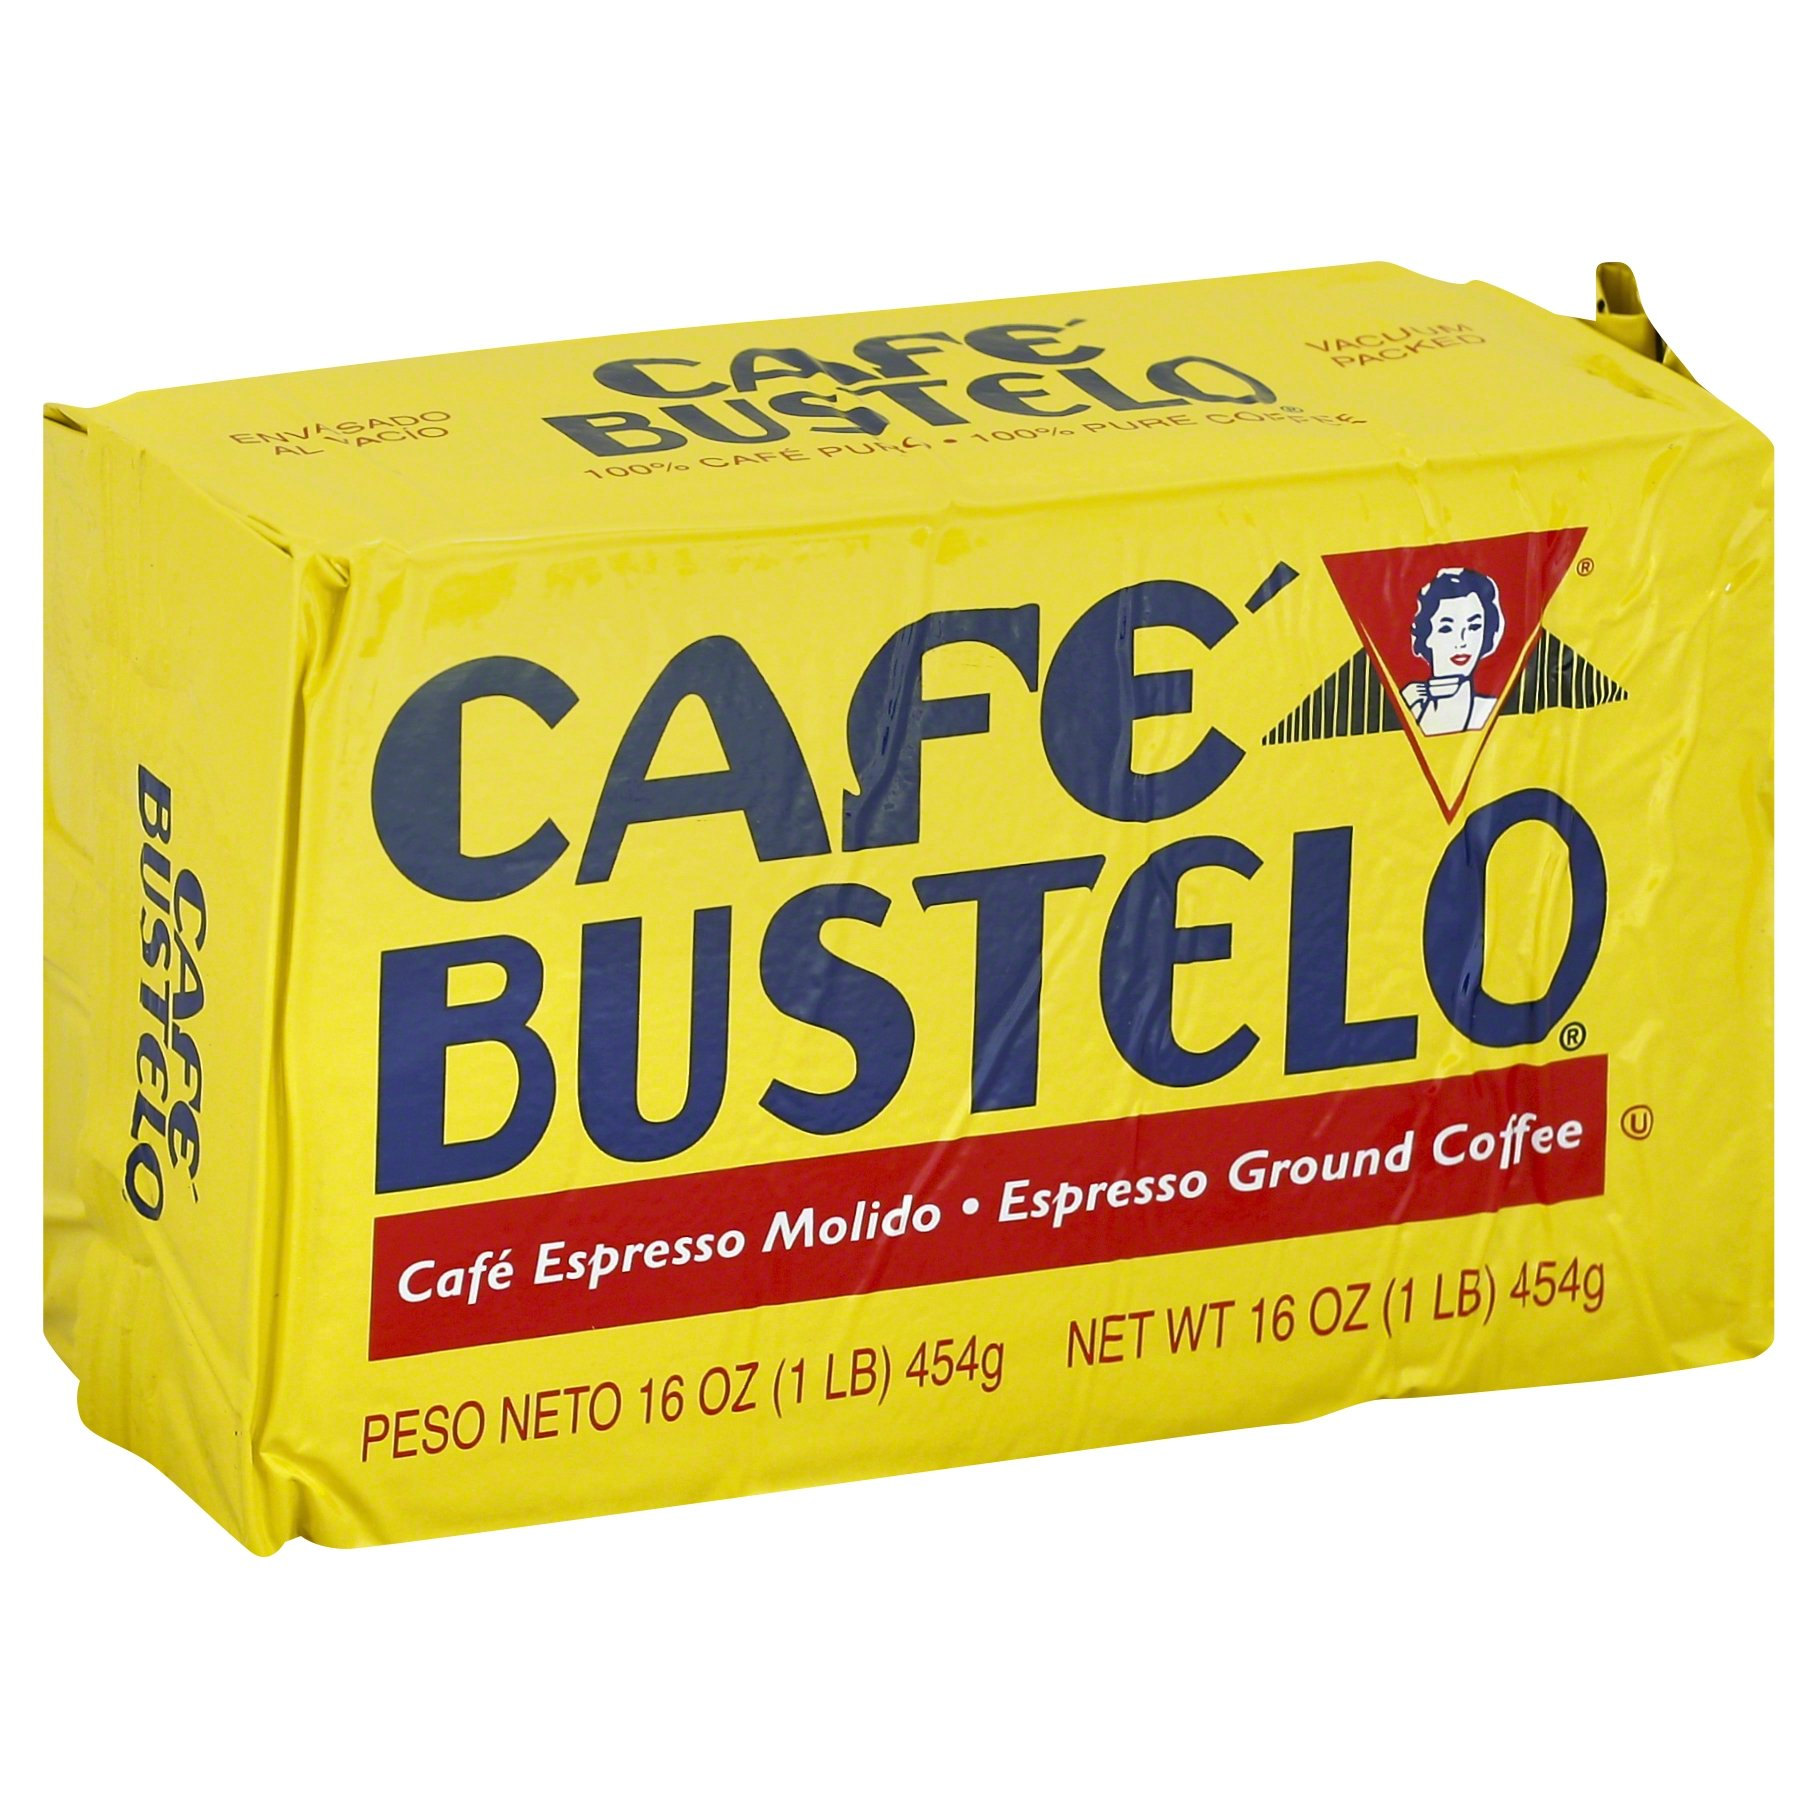 Cafe Bustelo Espresso Coffee, 16 Ounce (Pack of 12) by Café Bustelo